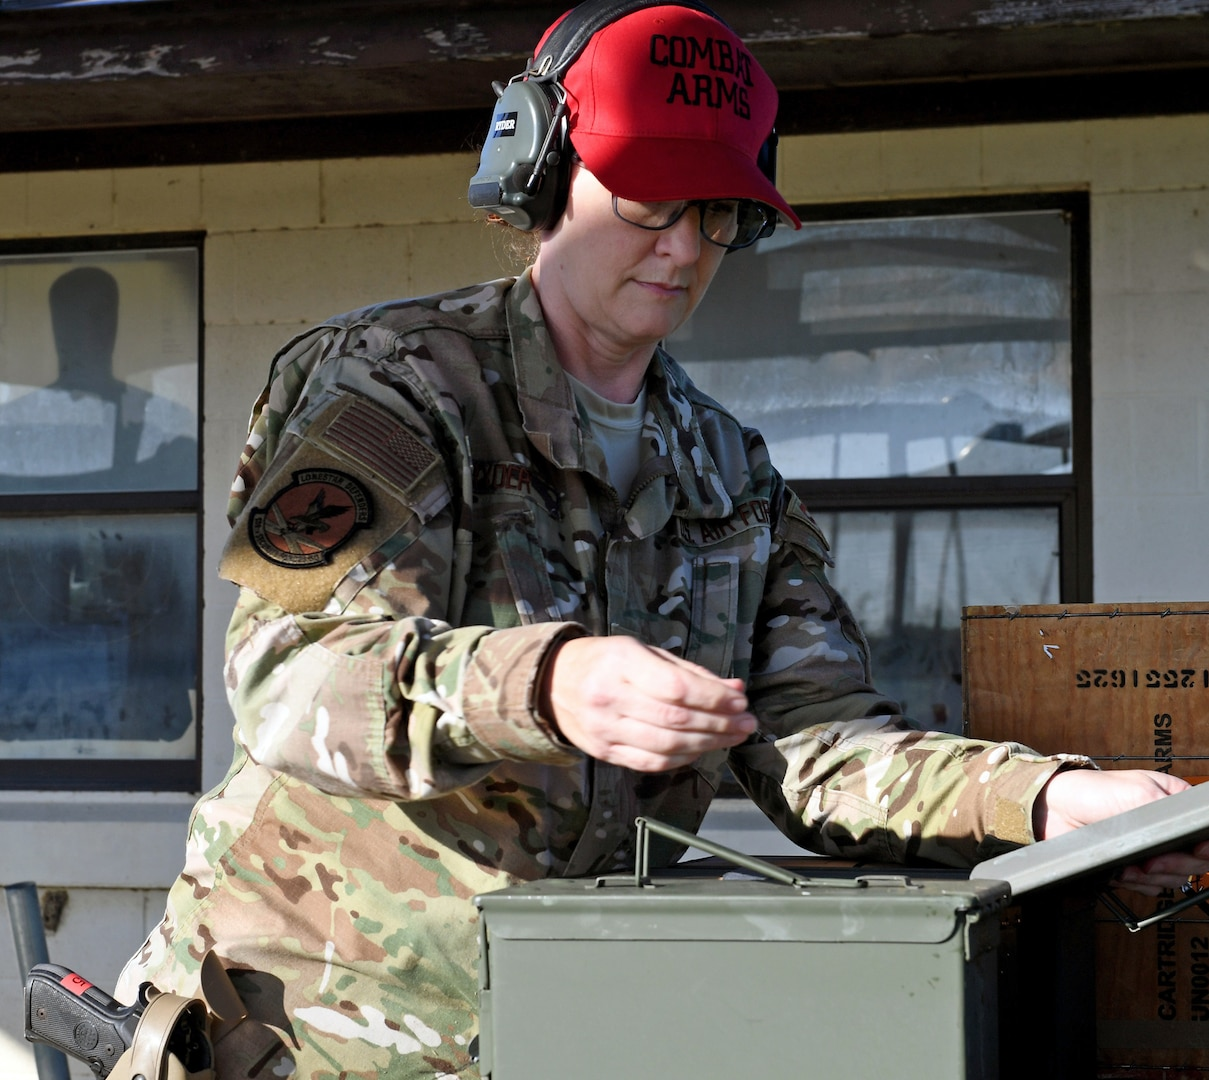 Staff Sgt. Tina Ryder, an Air National Guard Combat Arms instructor from the 149th Security Forces Squadron, prepares for weapons qualification training at a firing range at Joint Base San Antonio-Lackland's Chapman Training Annex May 27. Members from the 149th SFS received training on the M-9 pistol, the shotgun and grenades during this training event.